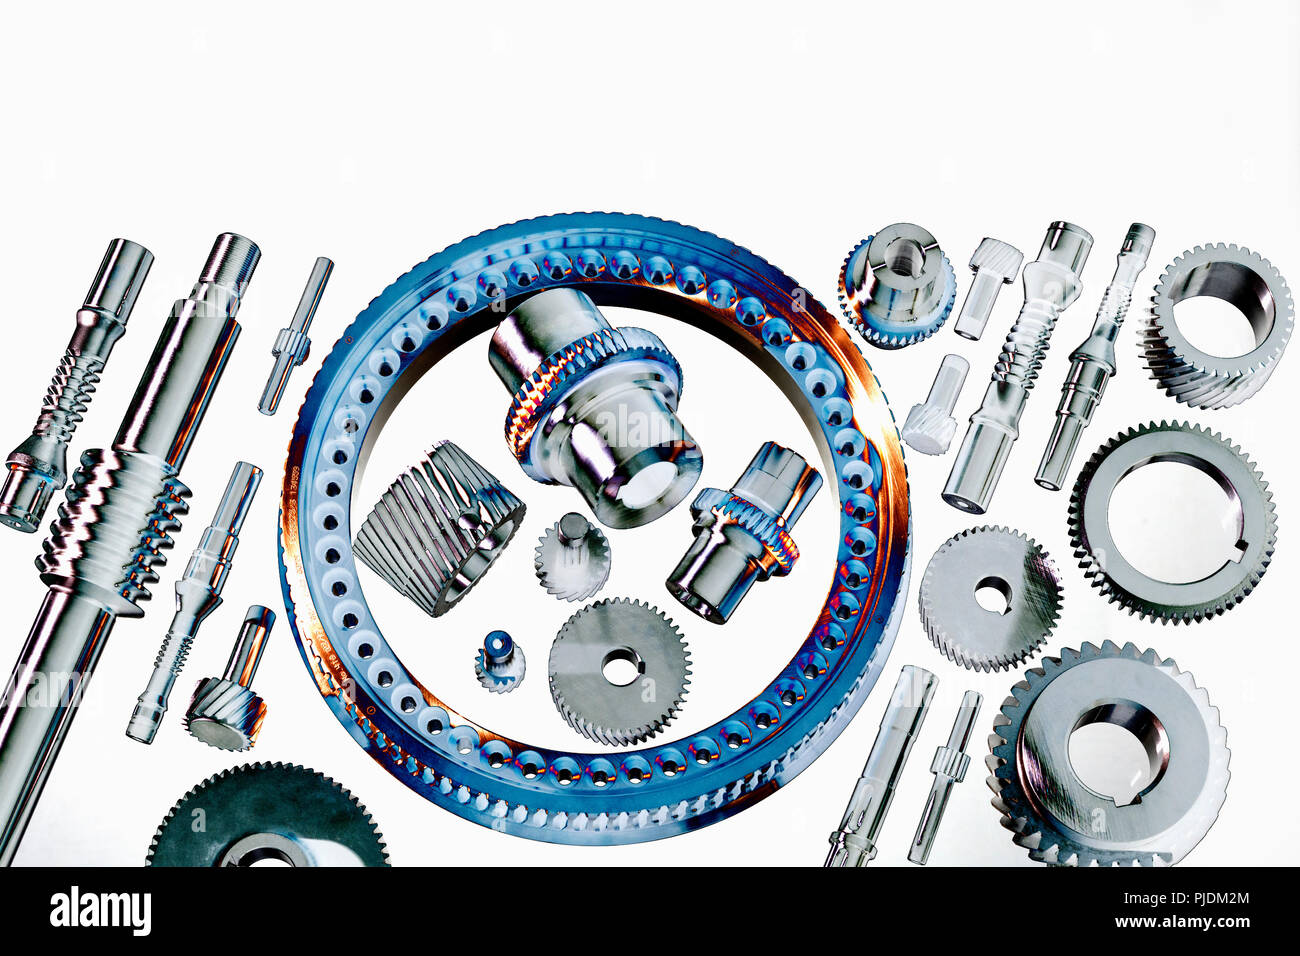 Solarised still life of precision engineered cogs and gears - Stock Image